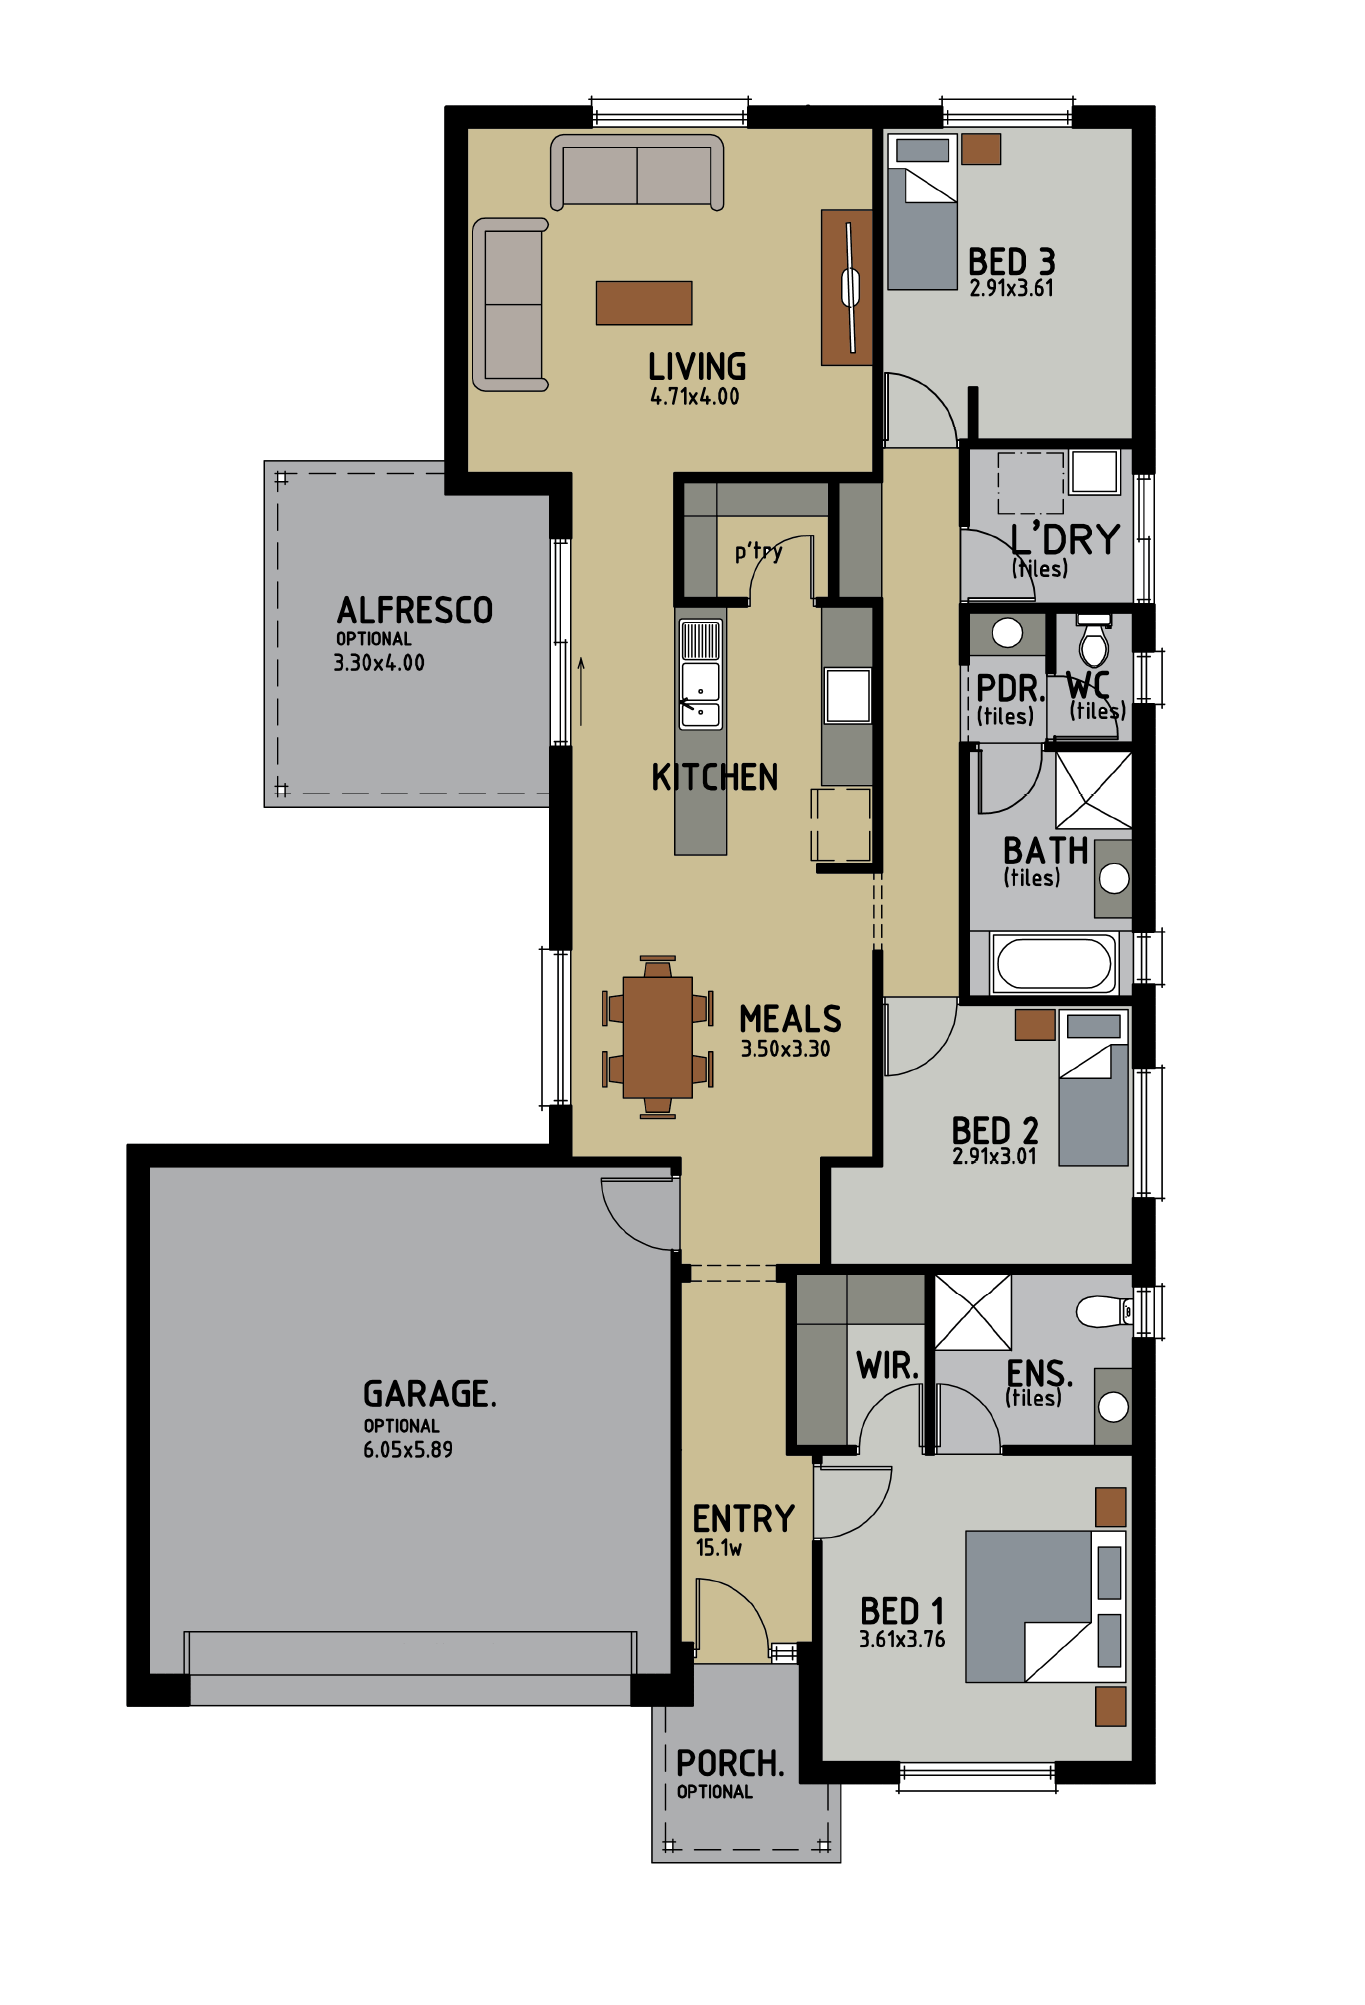 valley quality homes floor plans On quality floor design